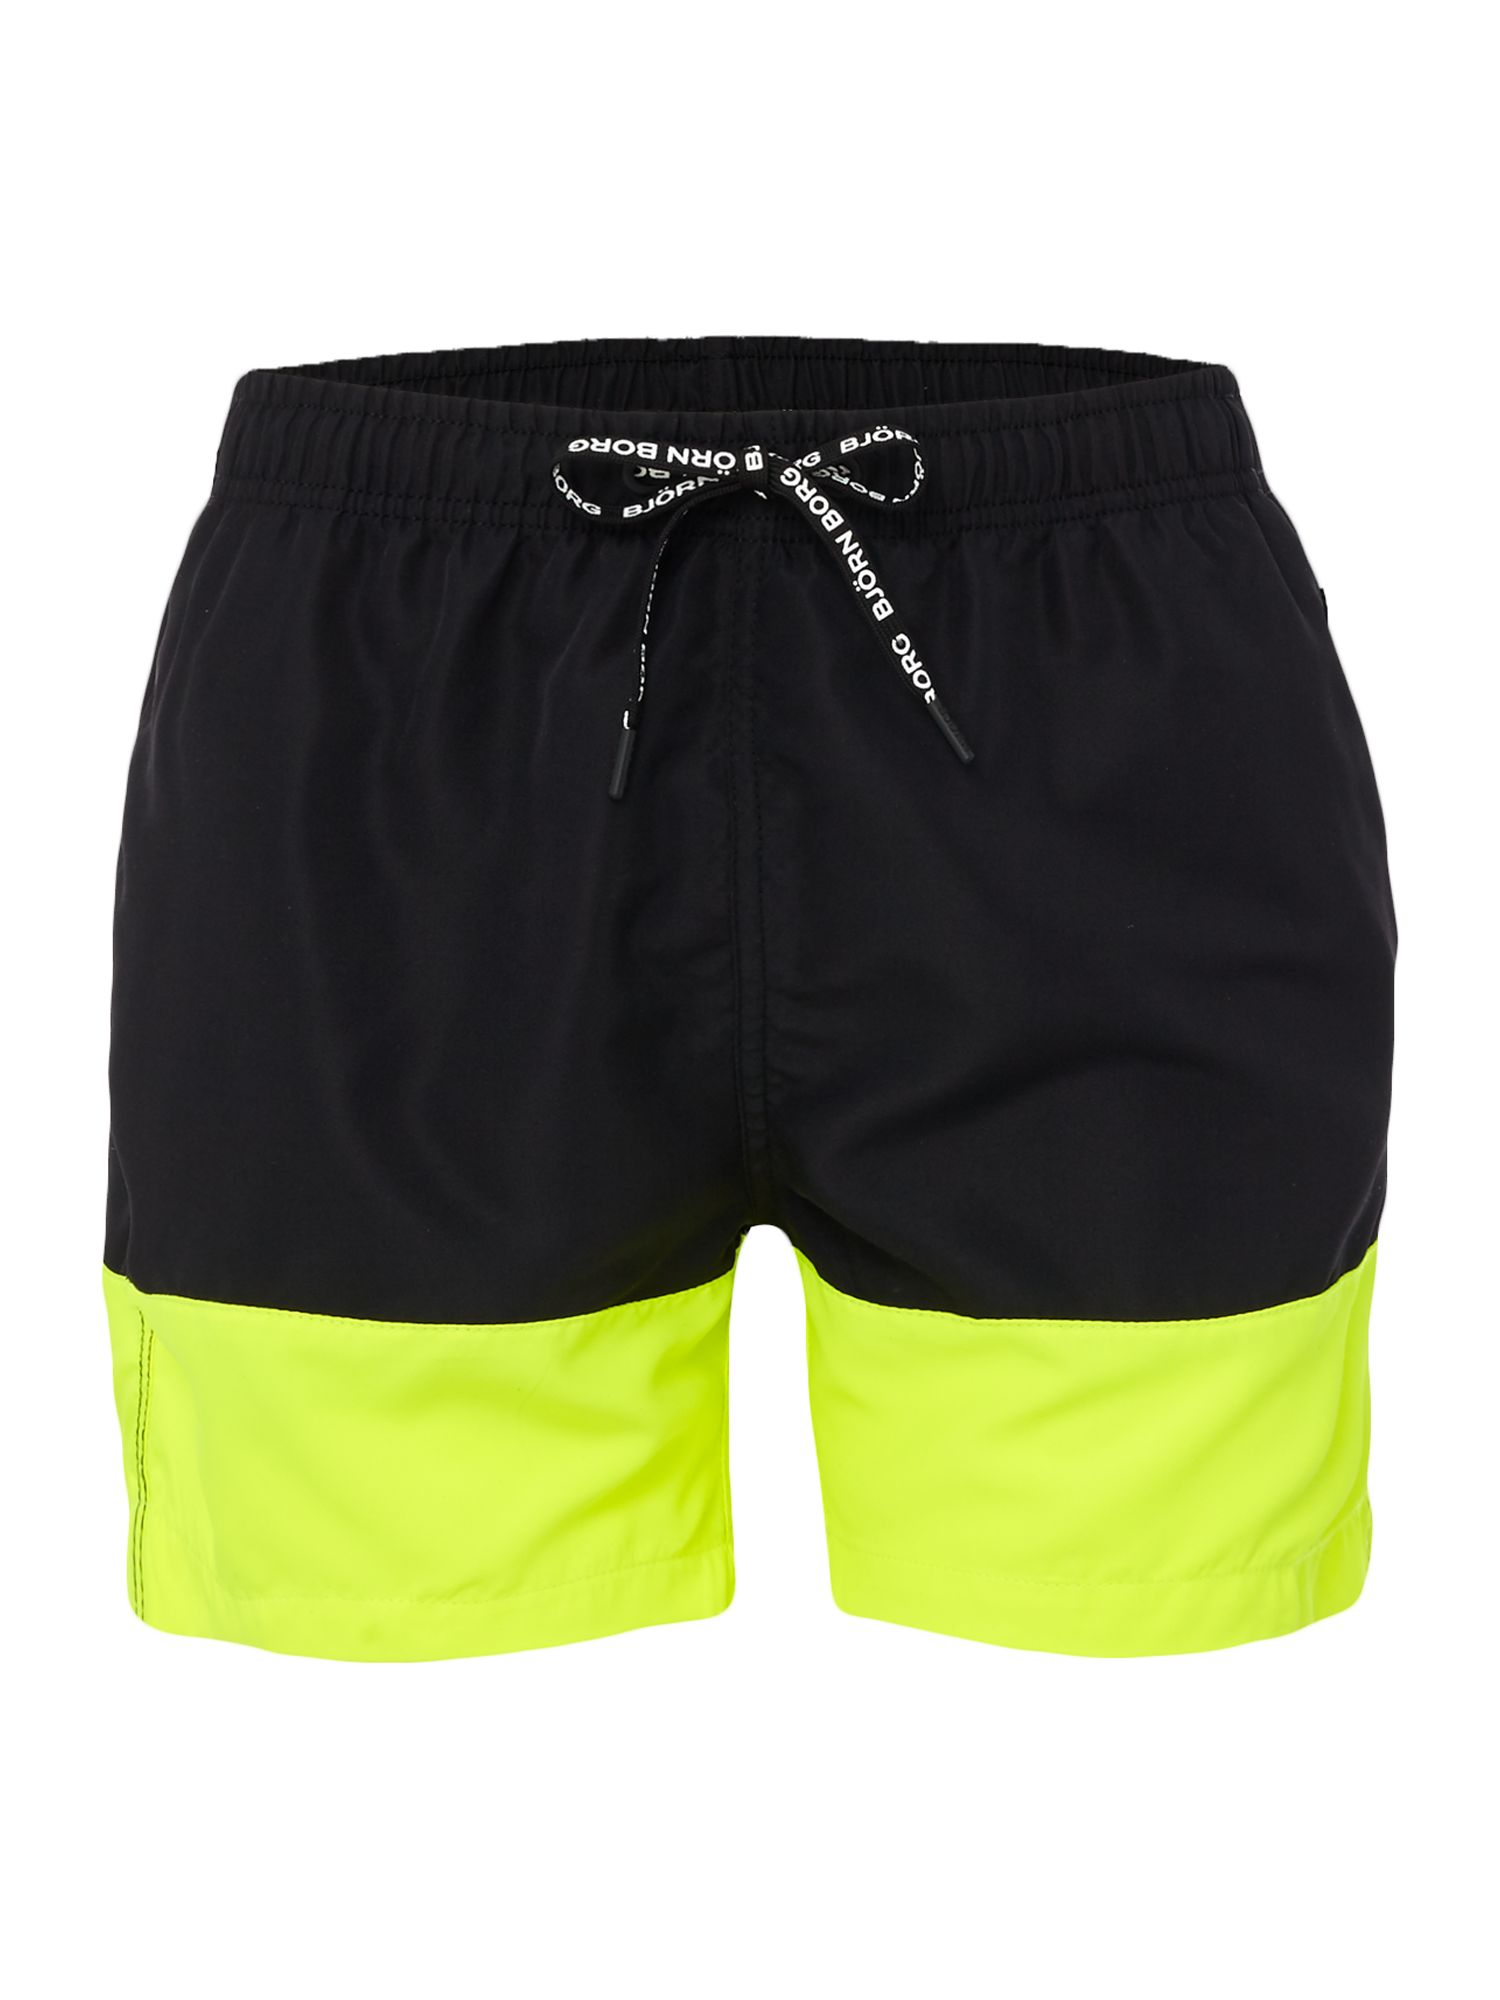 Men's Bjorn Borg Colour Block Swim shorts, Black